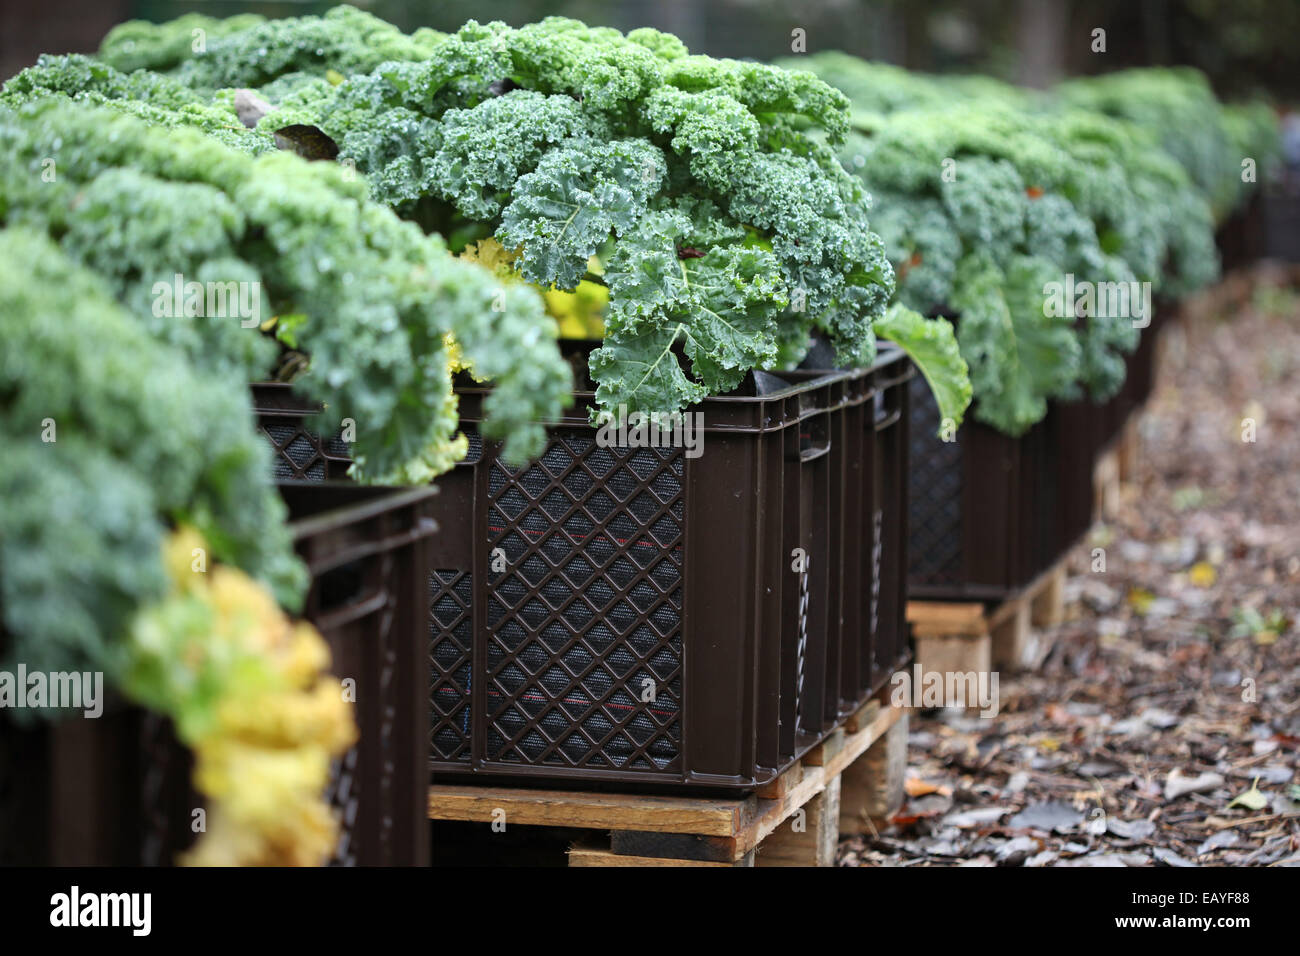 Close-up of curly kale farmed in plant boxes in an urban gardening project in Germany - Stock Image